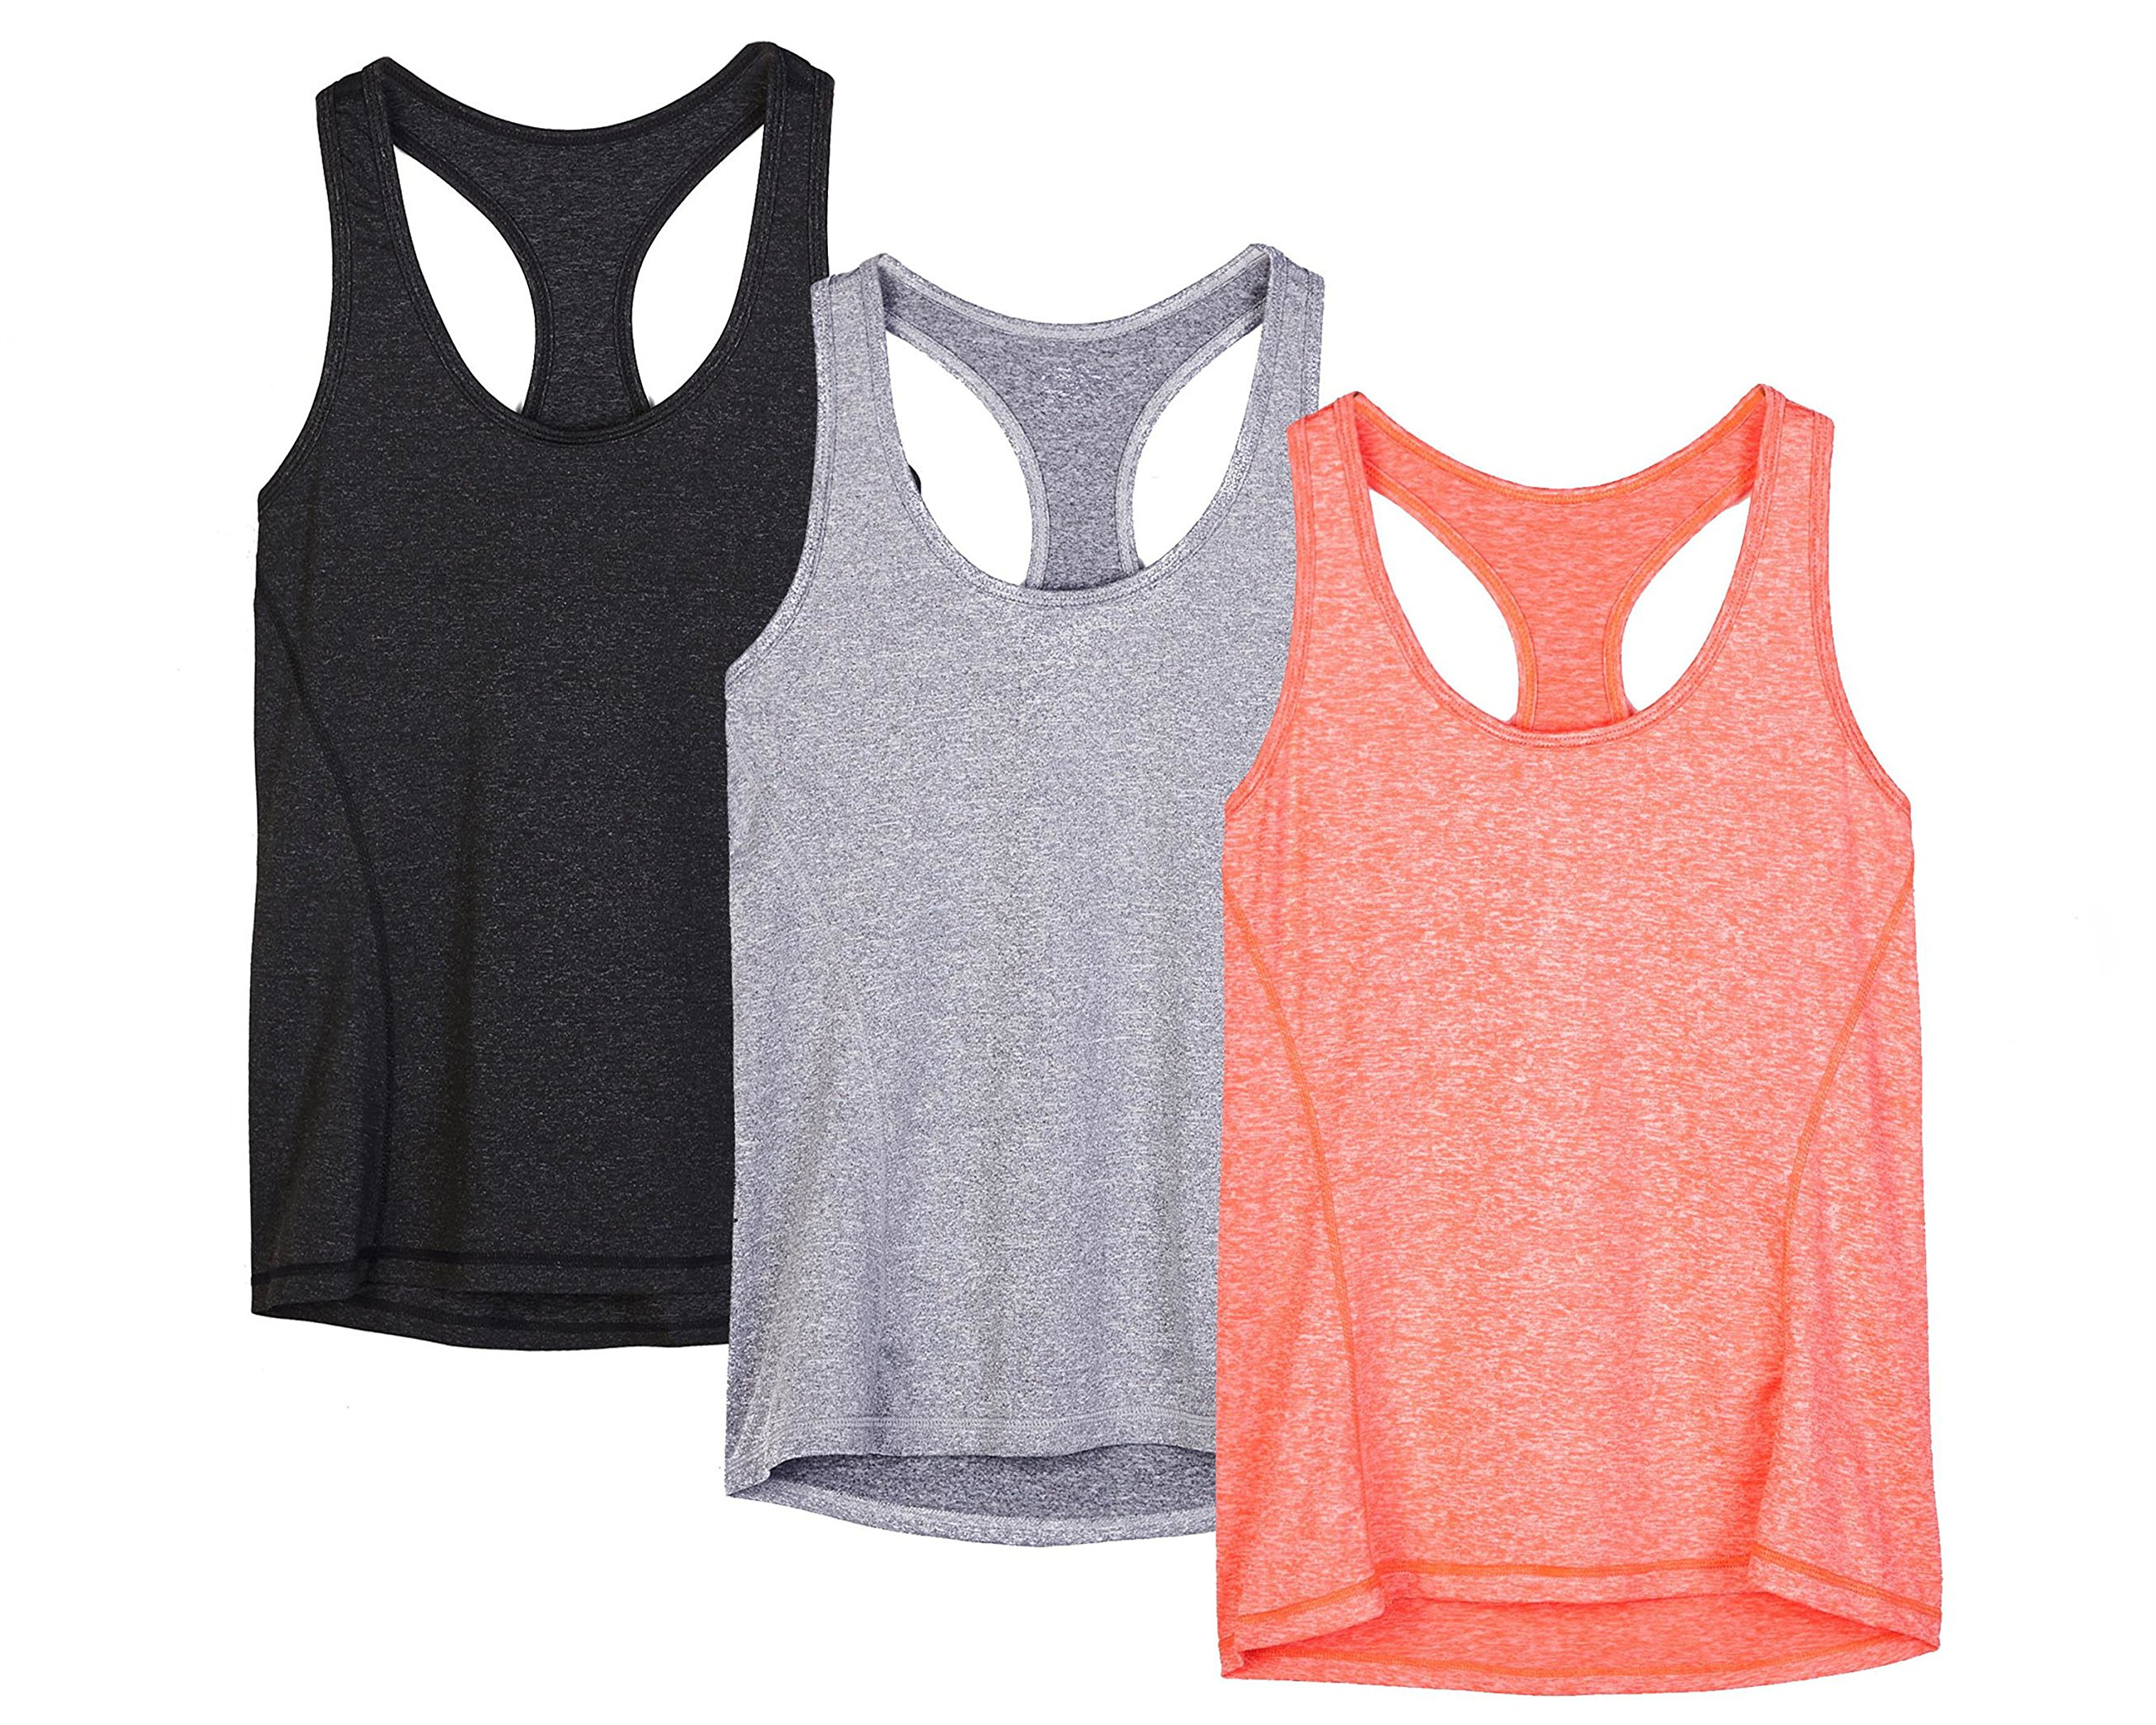 Sleeveless Fitness Running Shirt Gym Sport Vest icyzone Womens Open Back Yoga Tank Tops